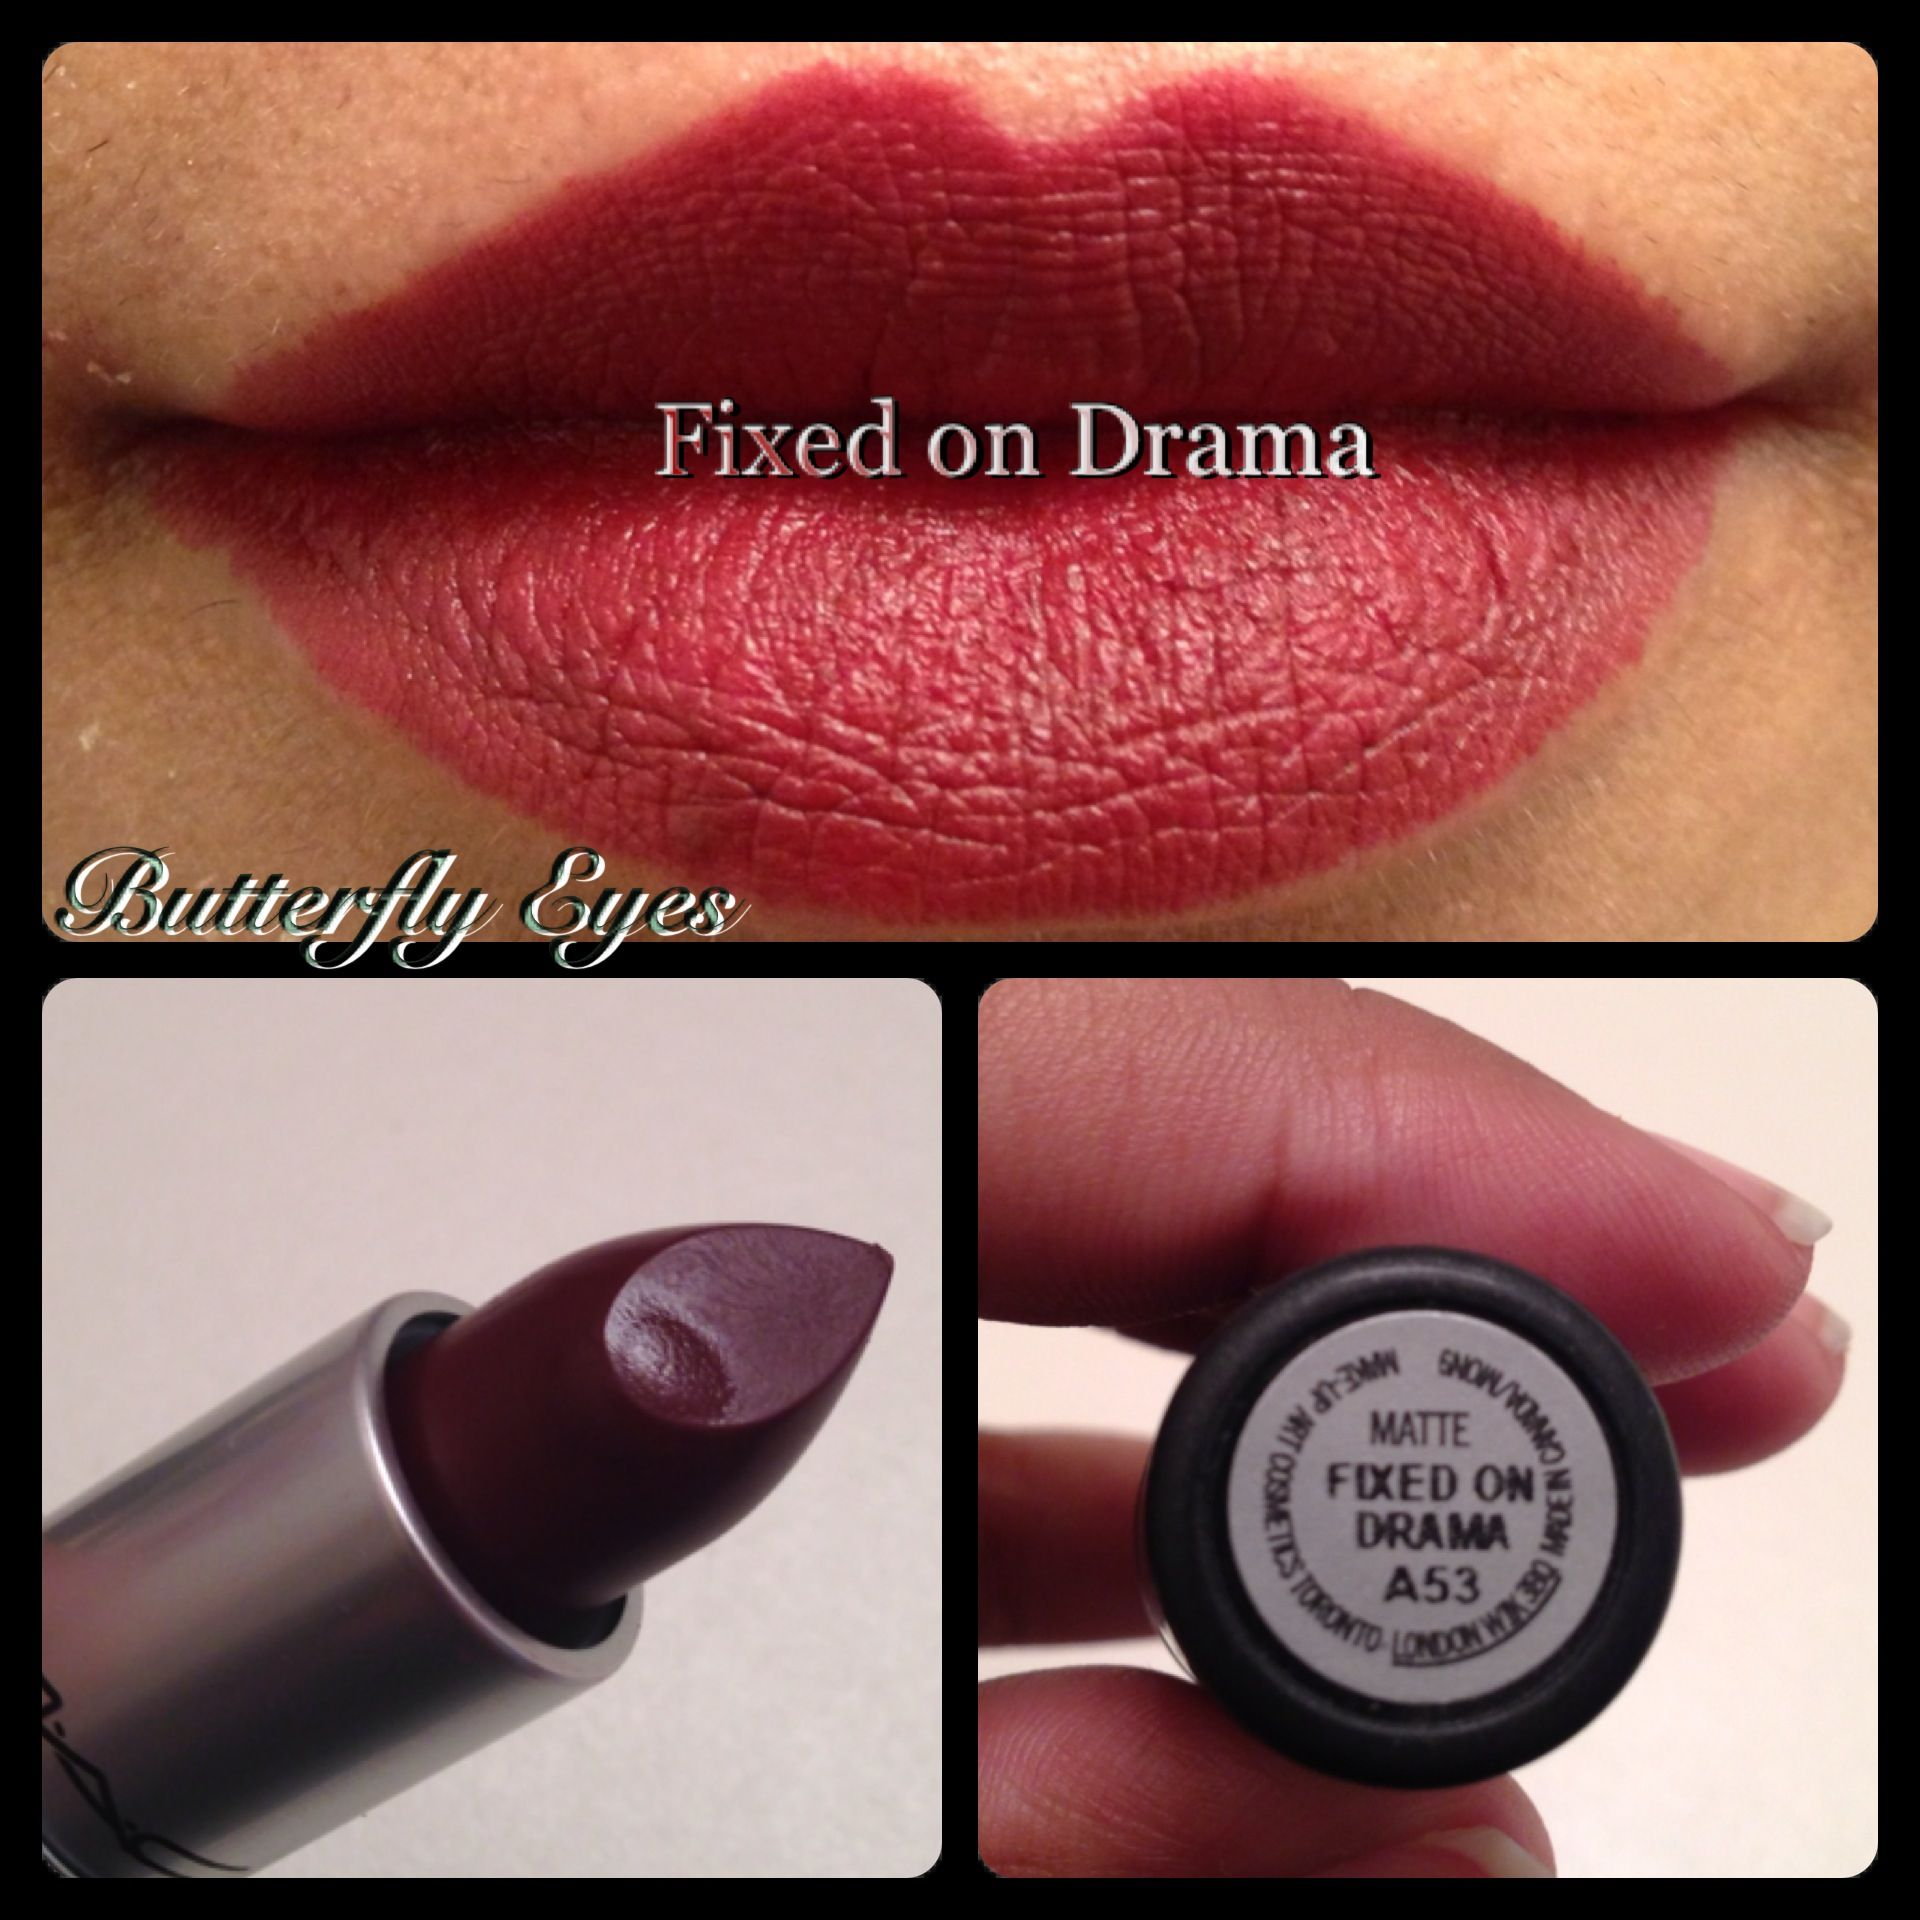 mac fixed on drama lipstick - photo #25